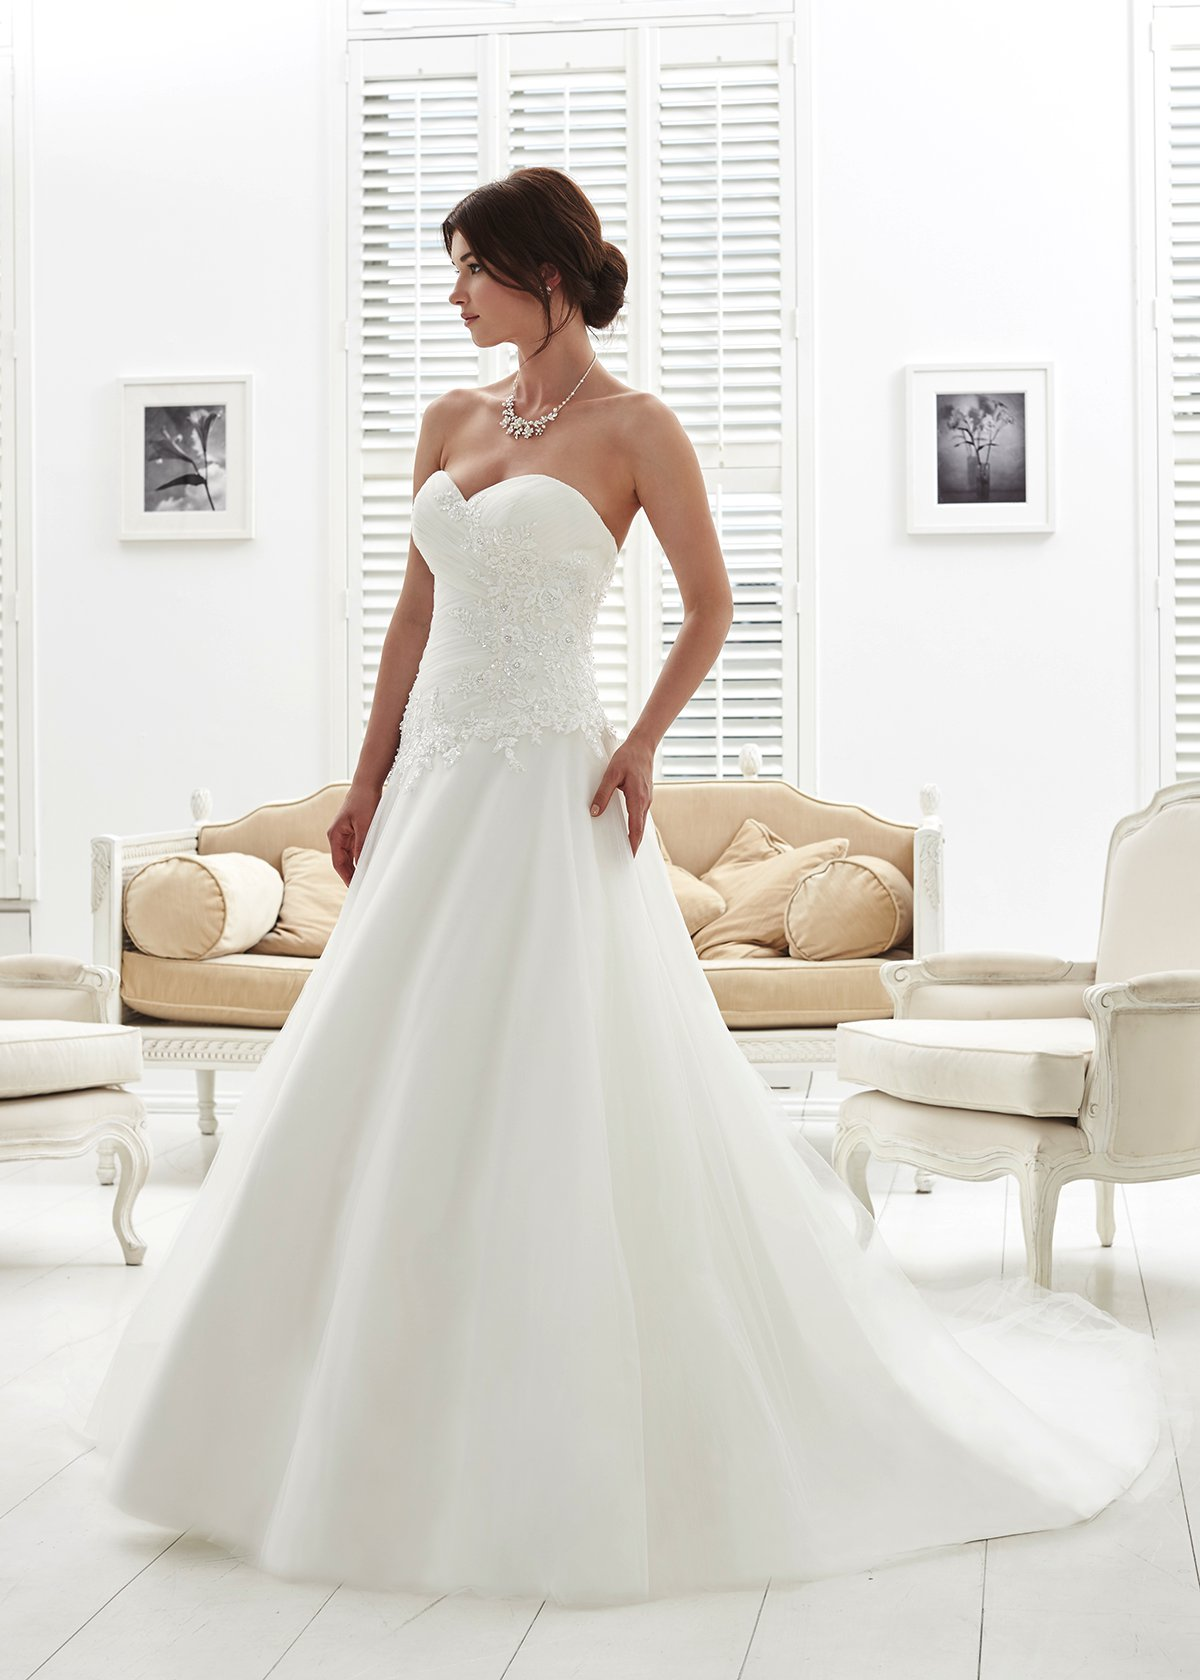 Wedding Gown And Ring